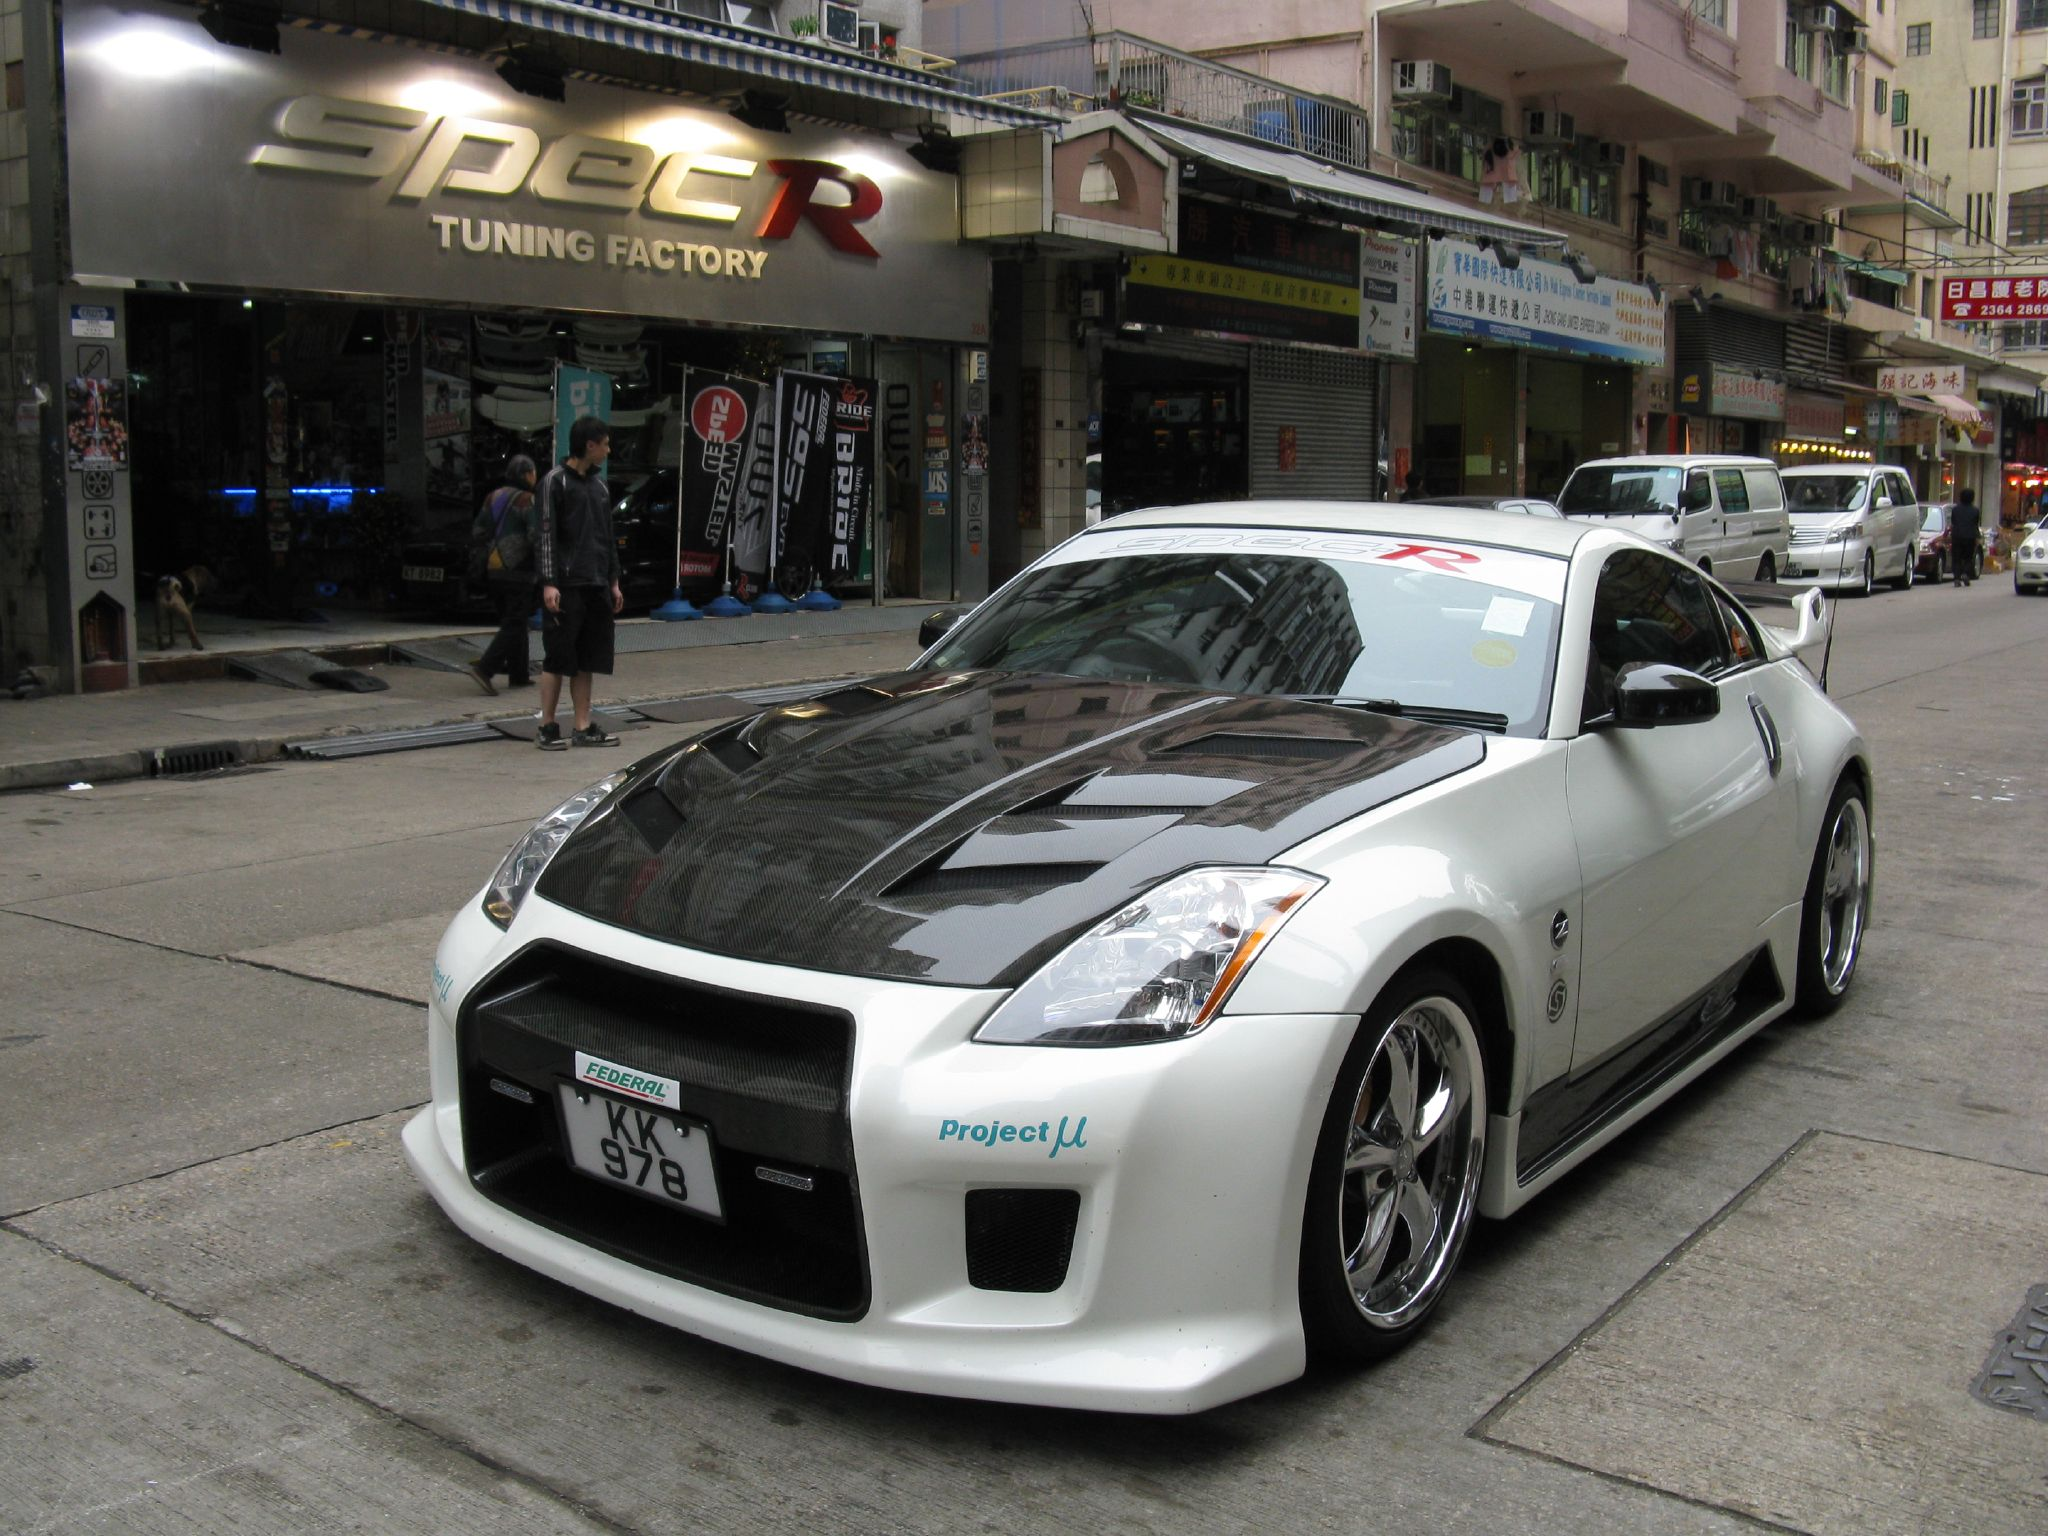 Nice car nissan 350z modified flickr photo sharing - Nissan 350z modified ...